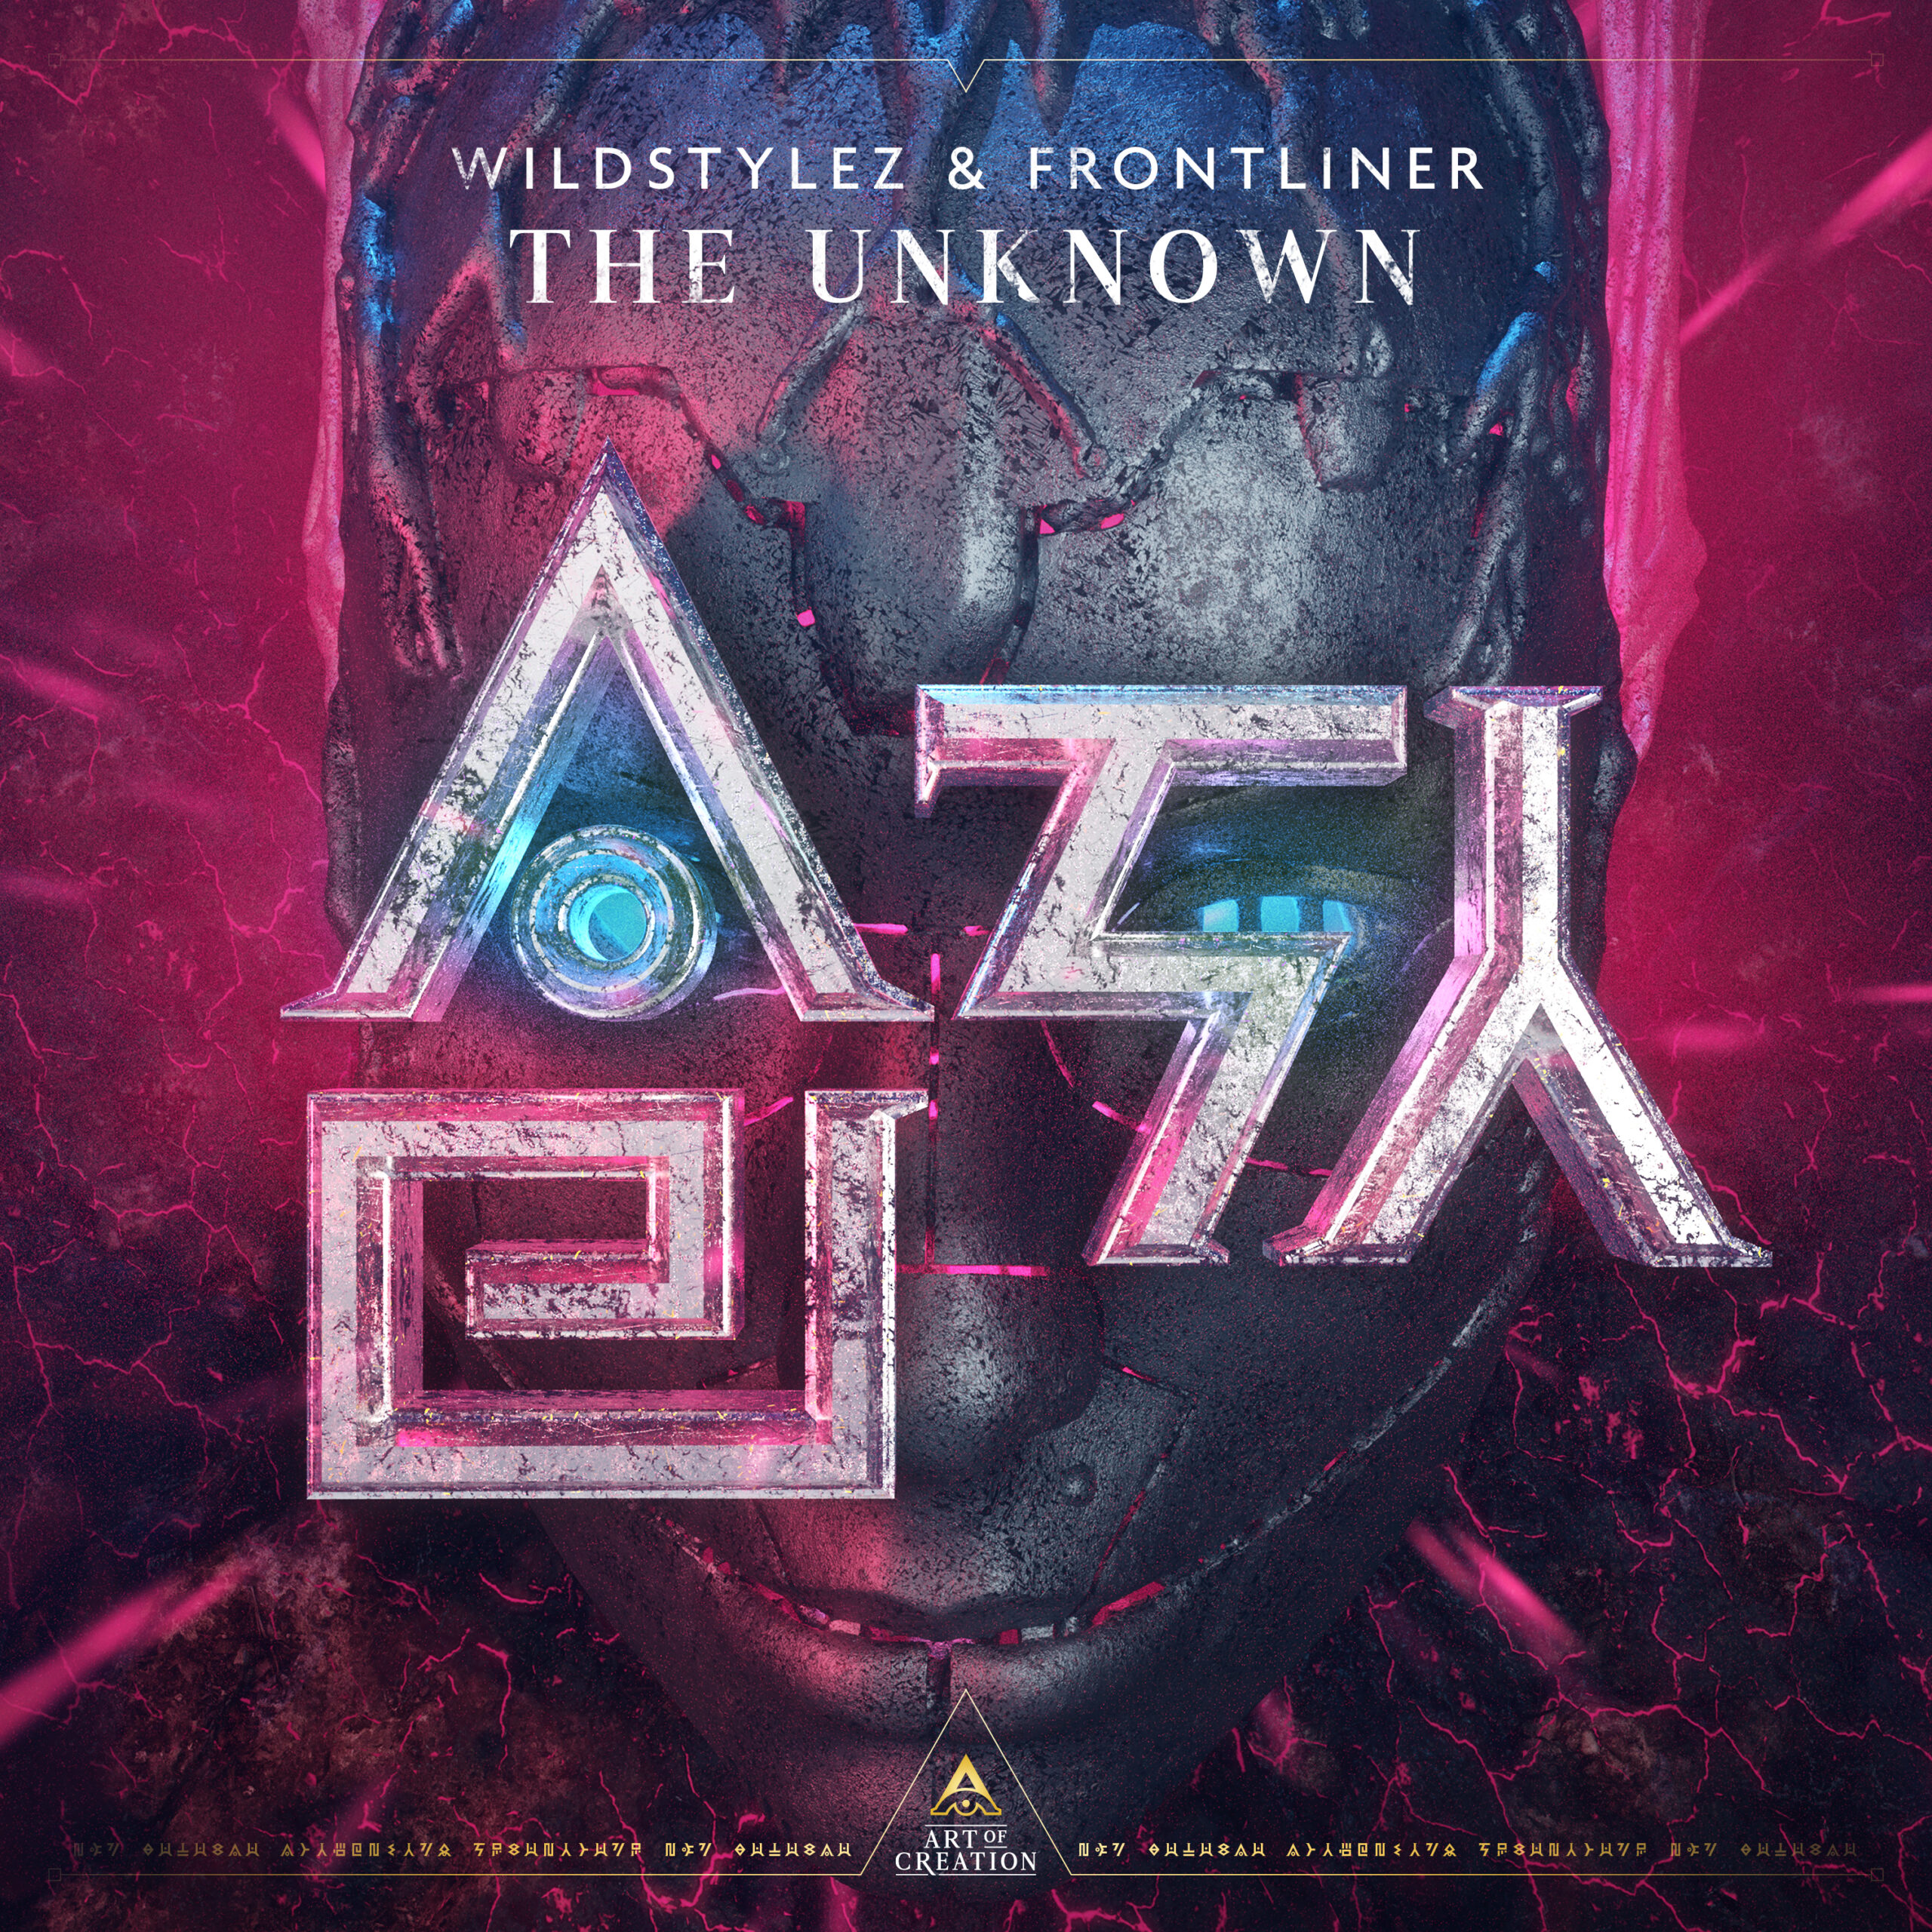 Wildstylez & Frontliner - The Unknown cover